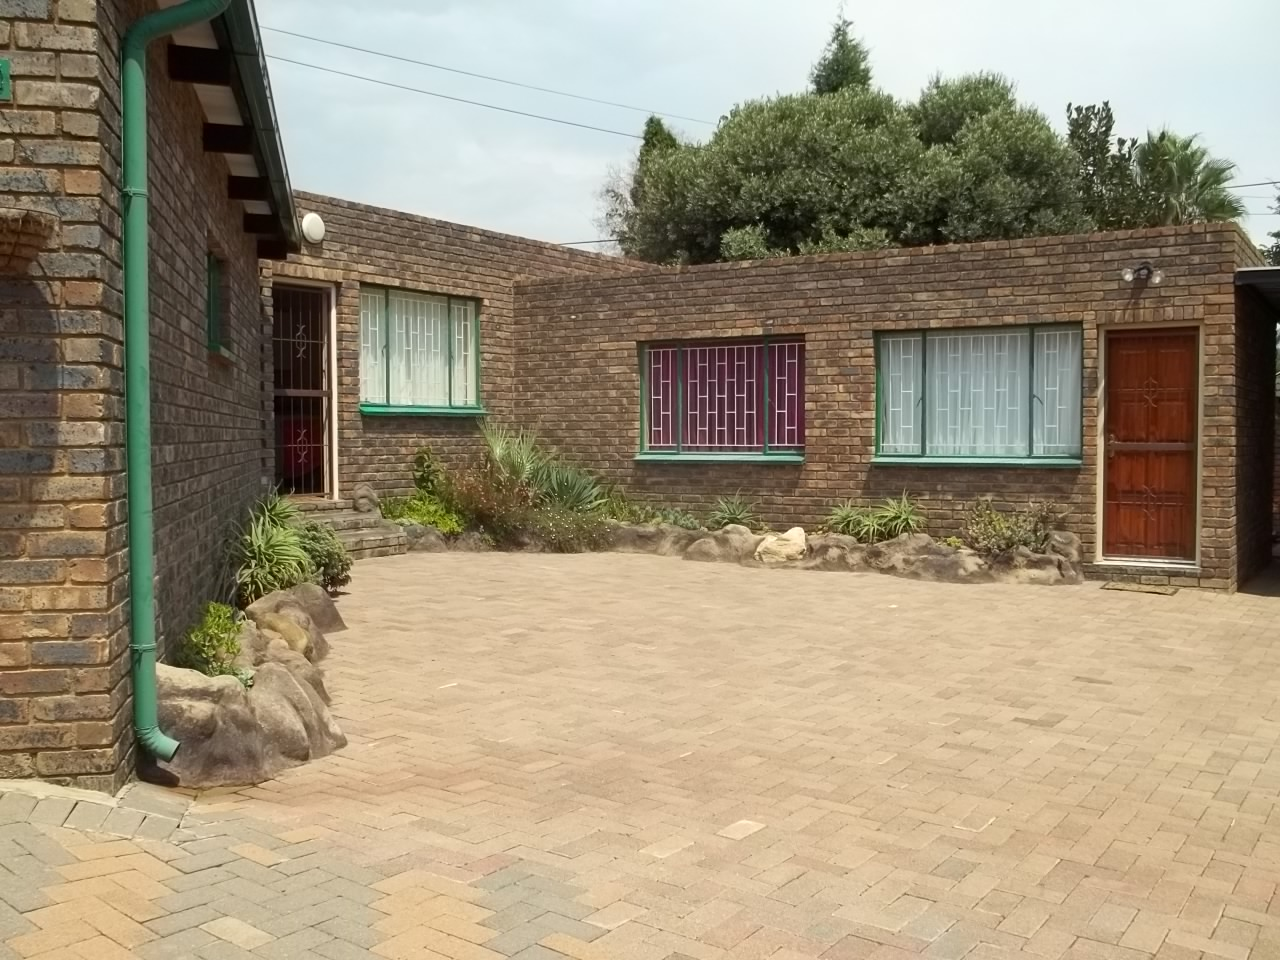 Fully furnished 1 bedroom garden flat for rent. The Reeds Centurion